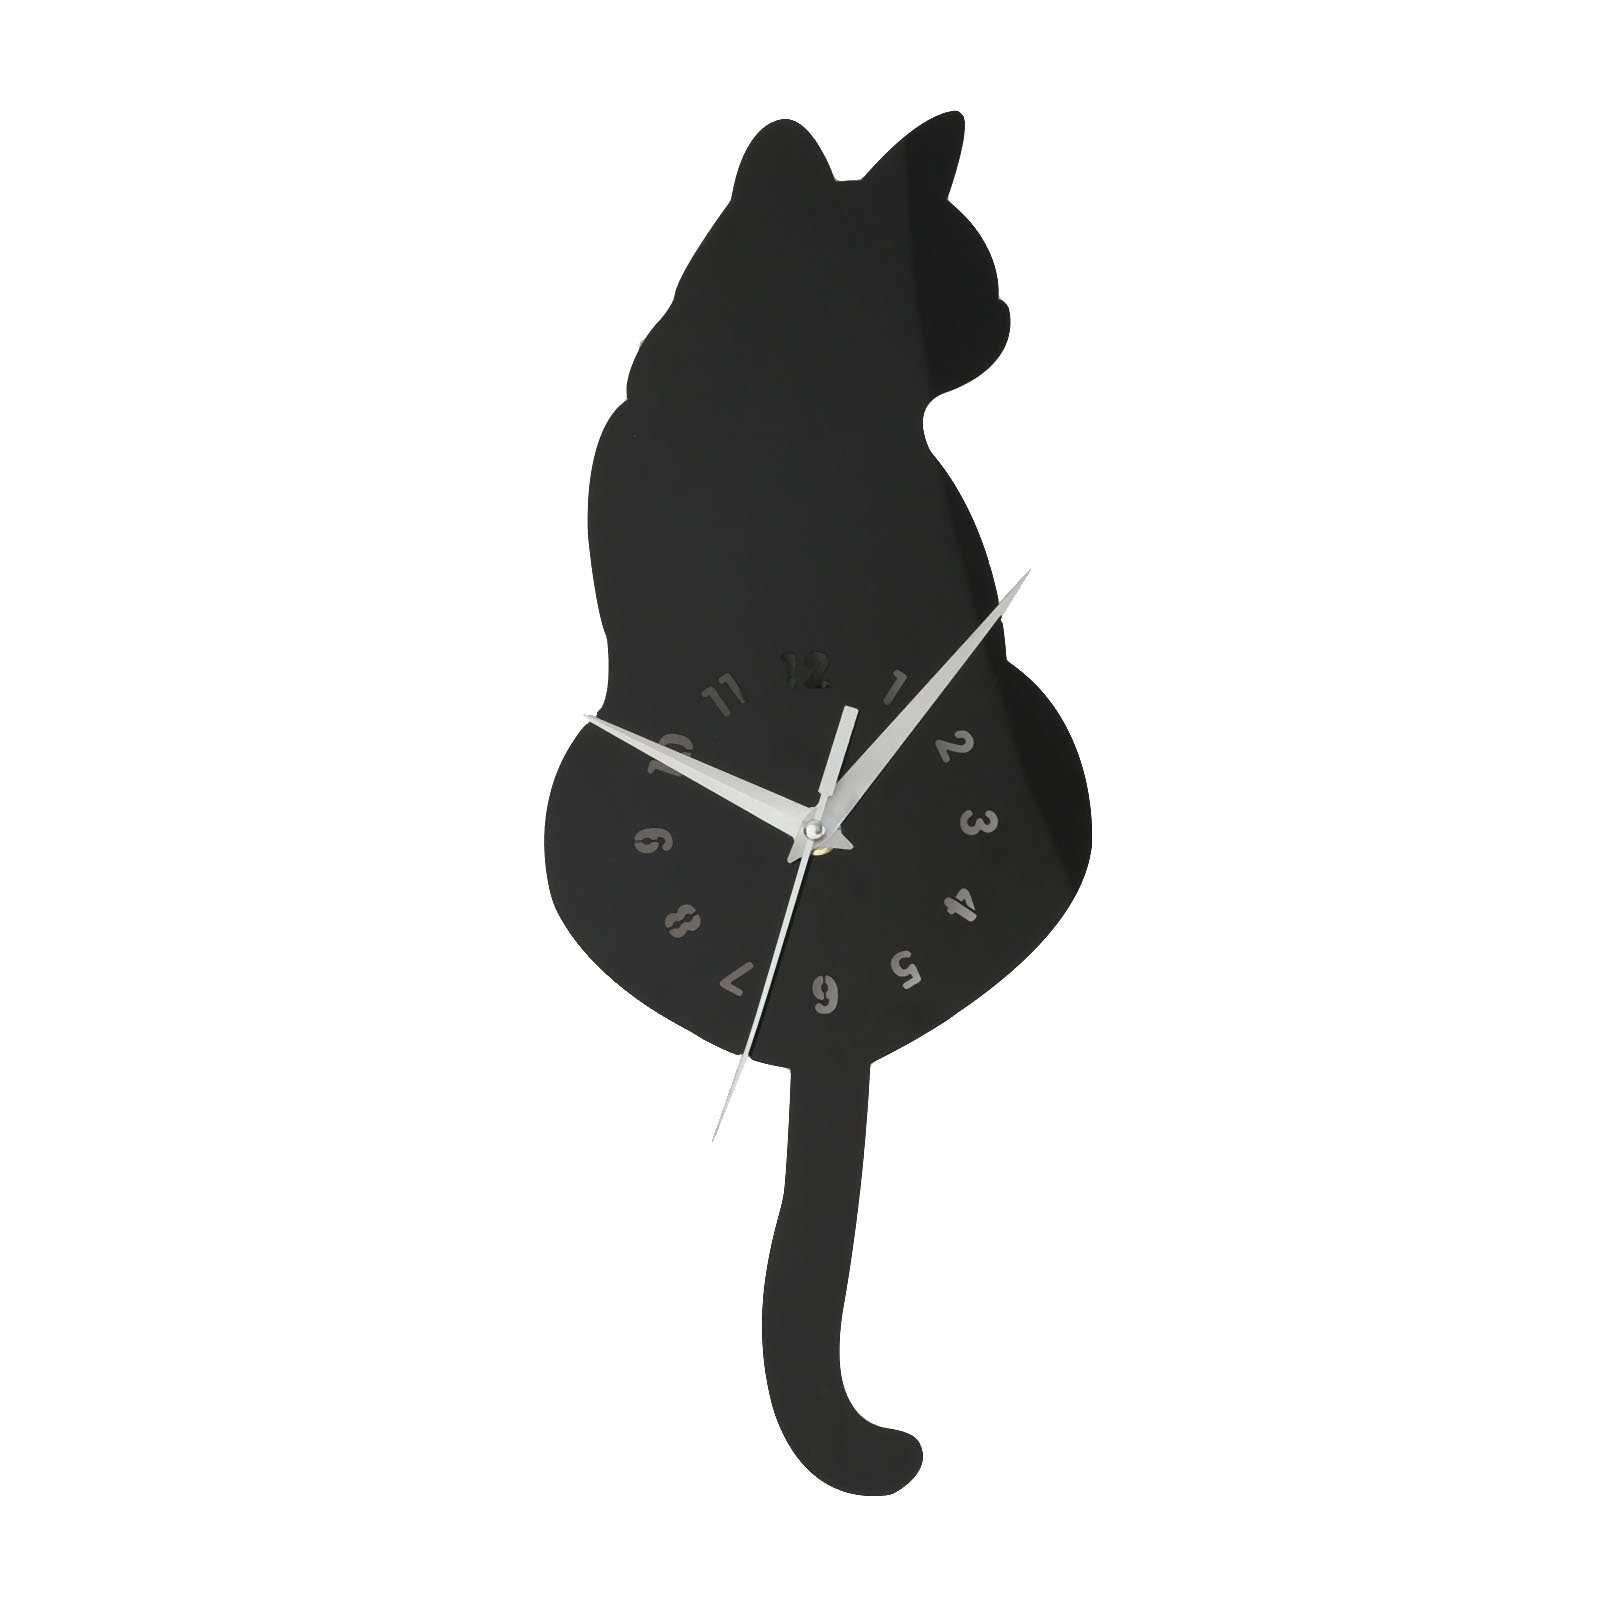 3D Cat Clock Appearance Wall Sticker DIY Eco-Friendly Fashionable Wall Decals Bedroom Living Room Wall Decoration Black